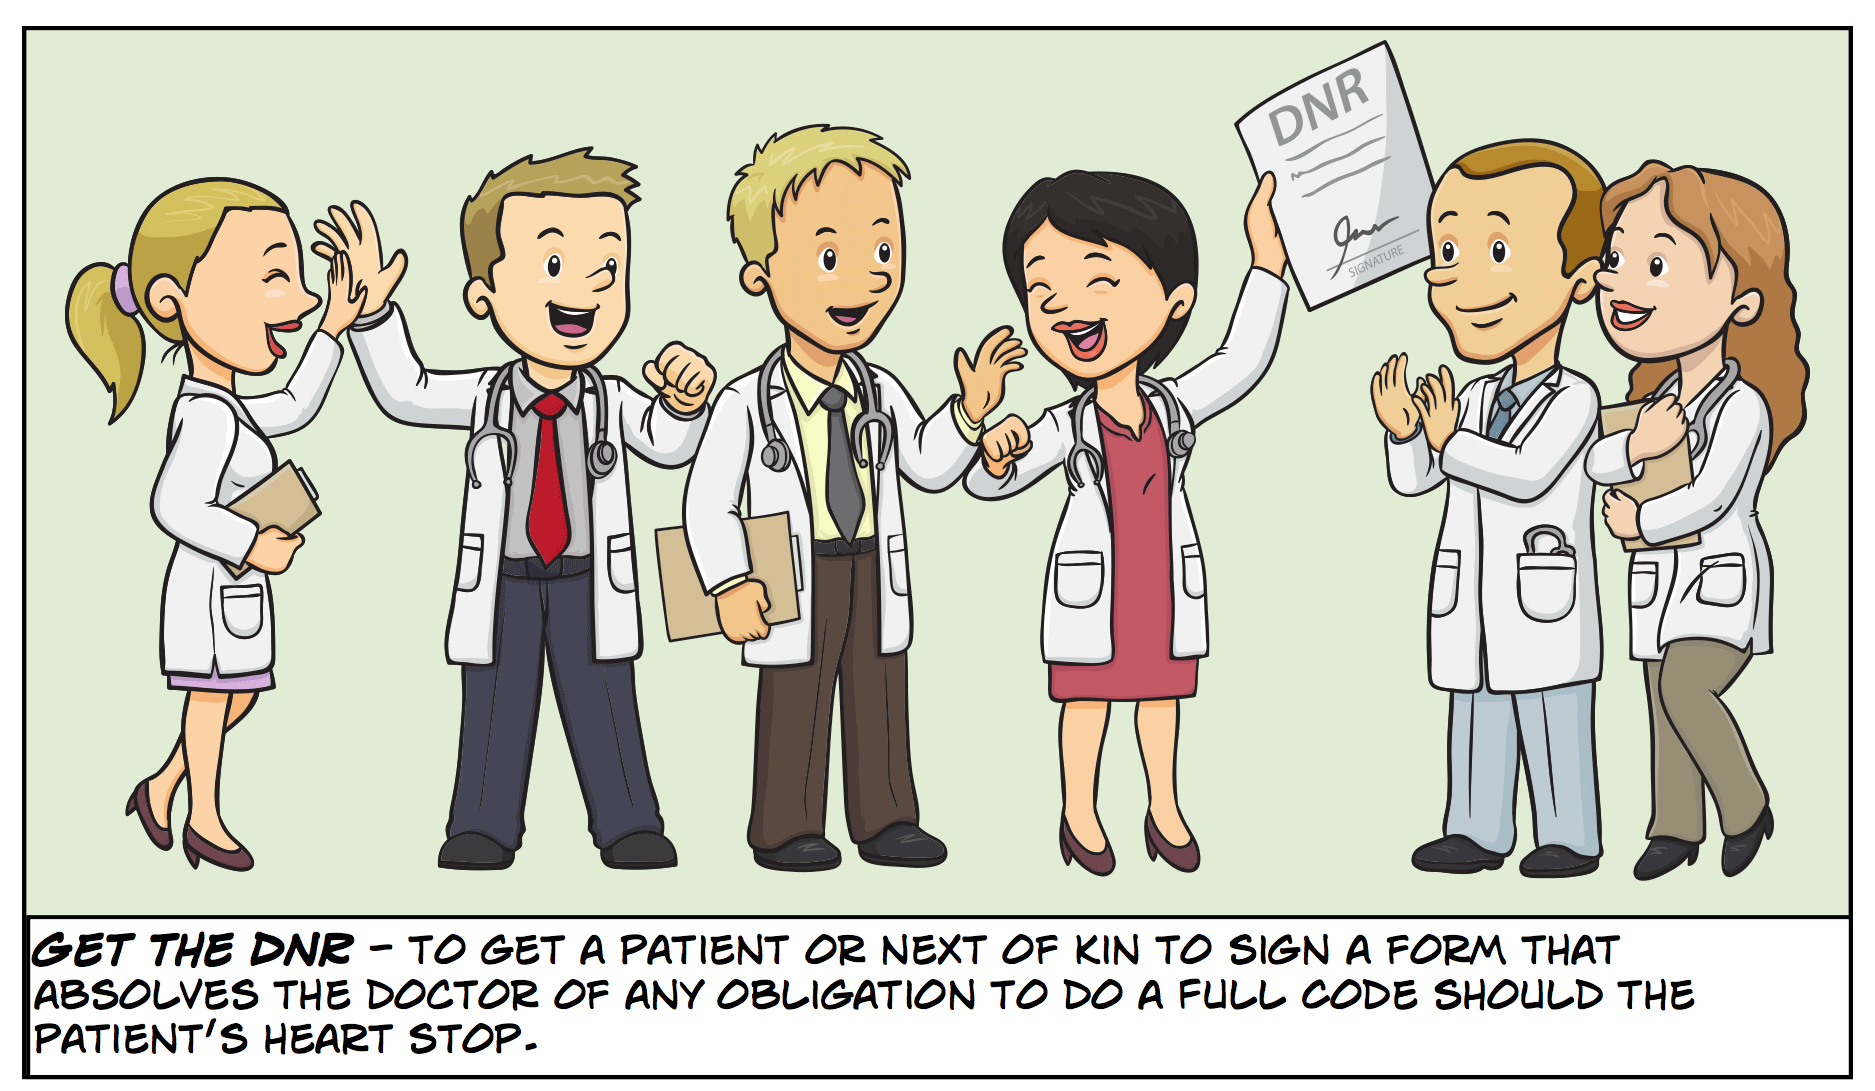 Get the DNR - to get a patient or next of kin to sign a form that absolves the doctor of any obligation to do a Full Code should the patient's heart stop.